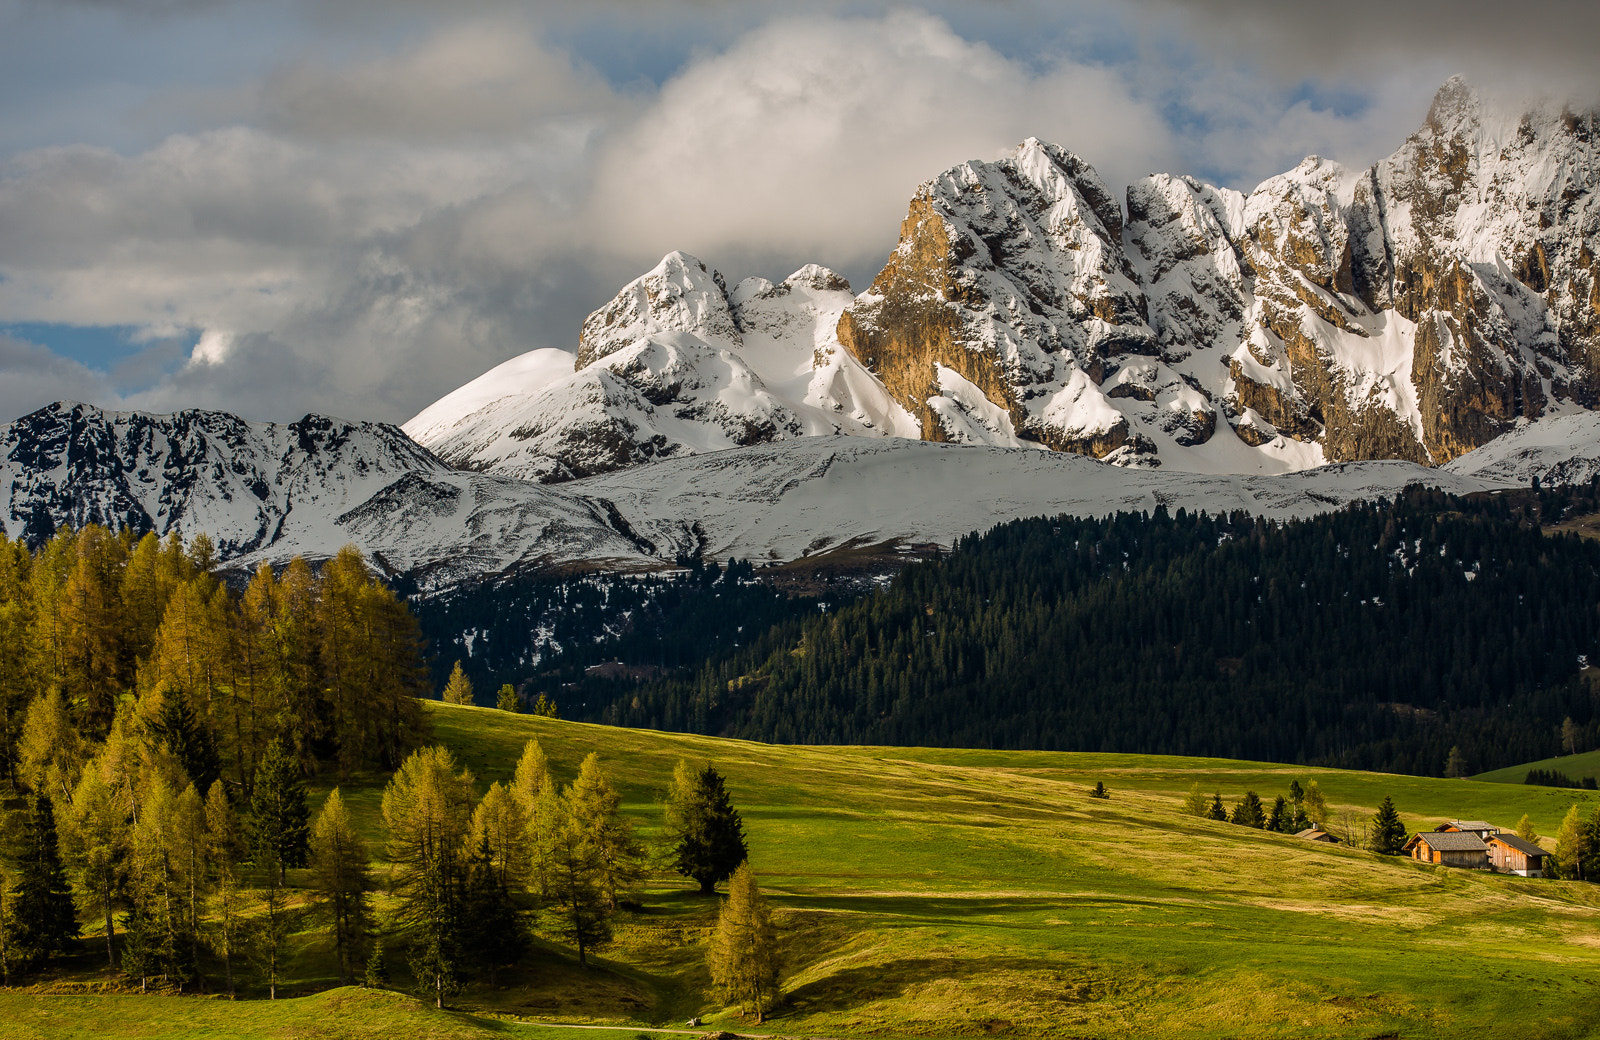 Photograph Morning light in the mountains by Hans Kruse on 500px